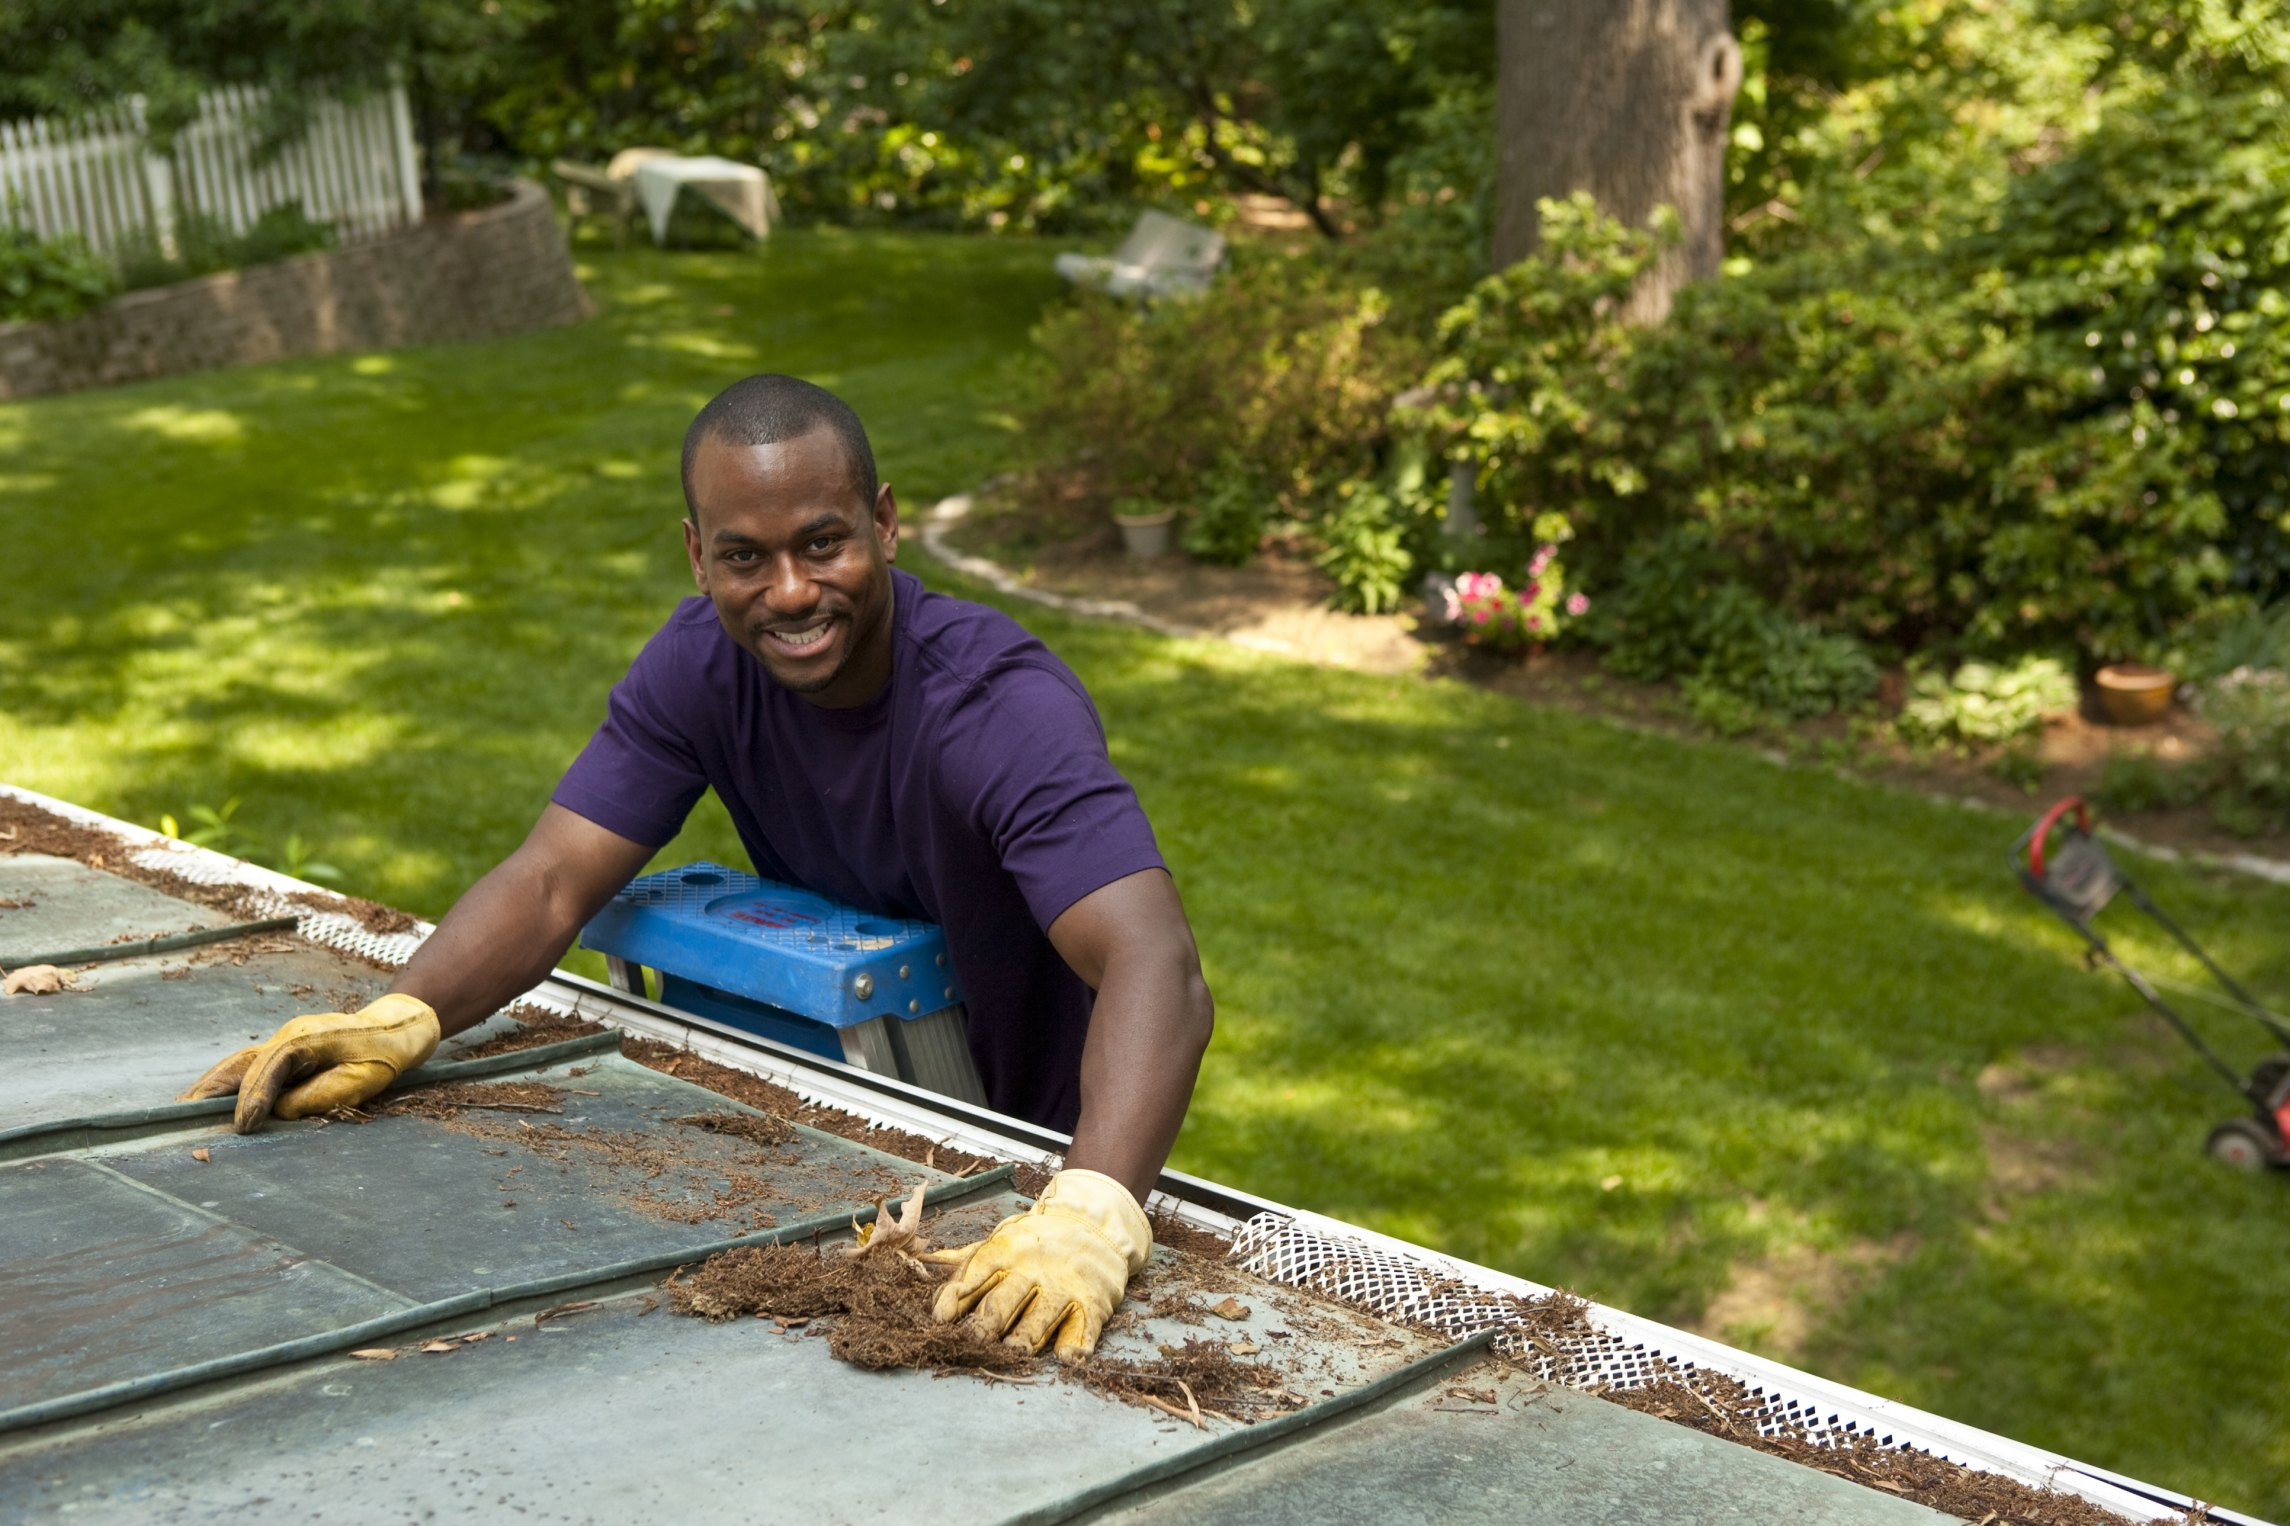 Can I Build a Gutter Cleaner for My Leaf Blower? - eHow